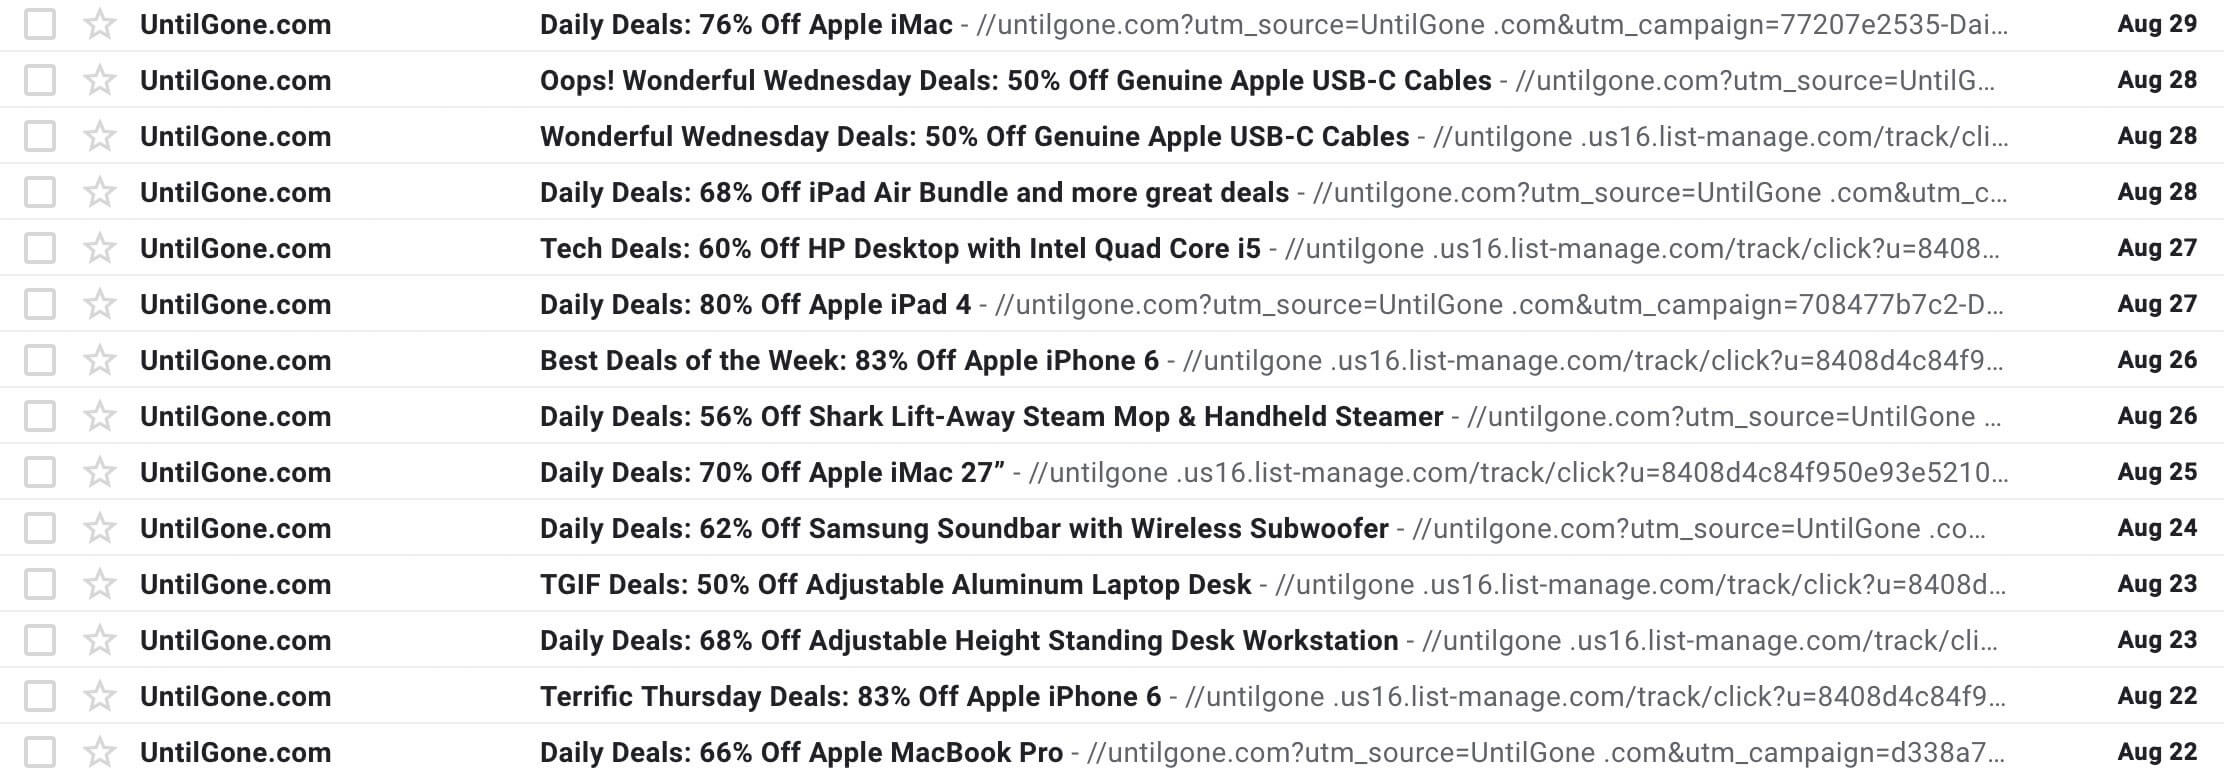 Frequent emails in an inbox.